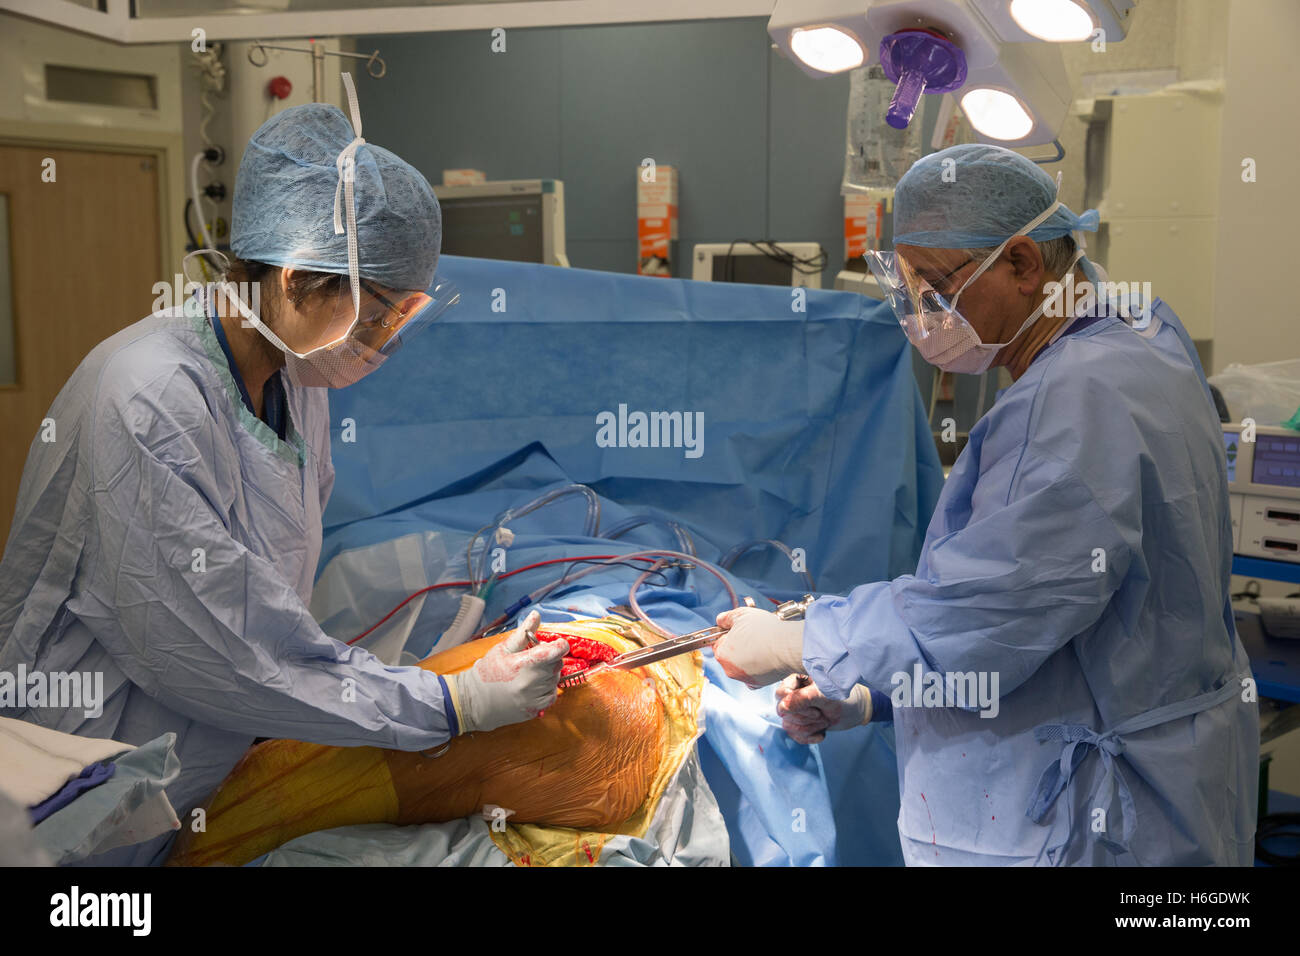 Total Knee replacement Operation in a Hospital theatre - Stock Image